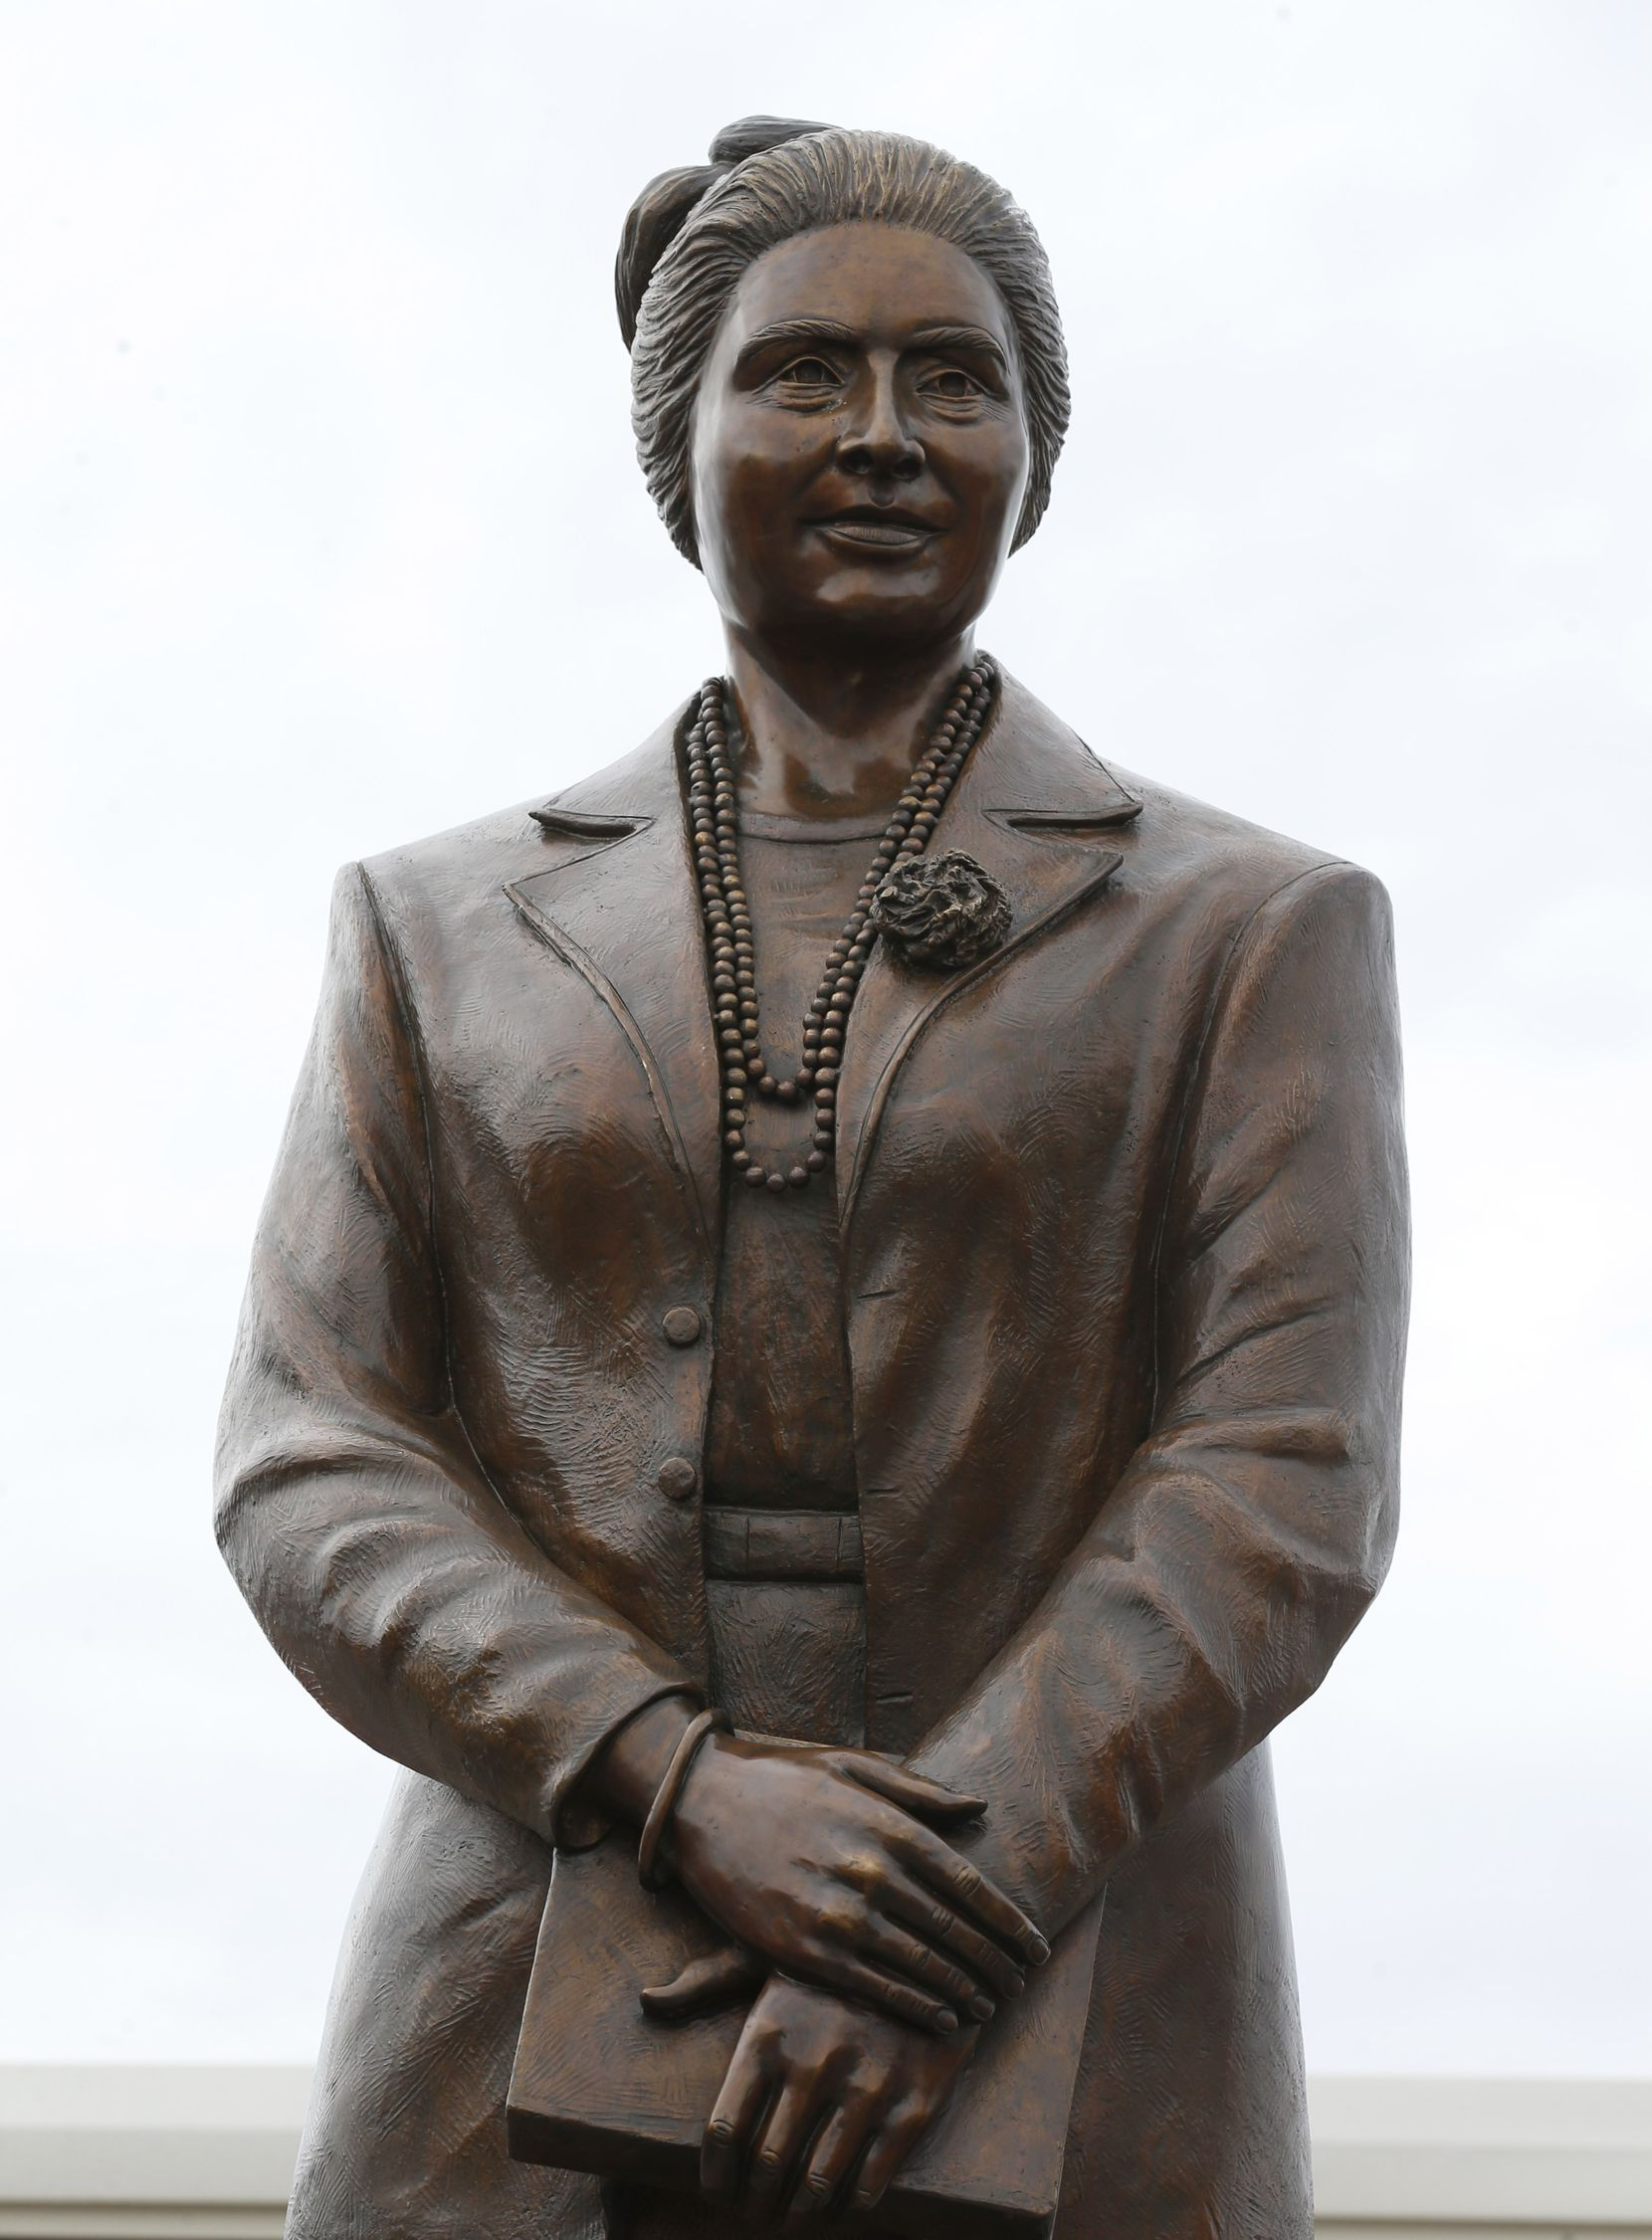 Adelfa B. Callejo statue by artist German Michel at a storage facility in Dallas on Wednesday, November 27, 2019. Adelfa Callejo was a fierce civil rights defender and lawyer who died nearly 6 years ago.